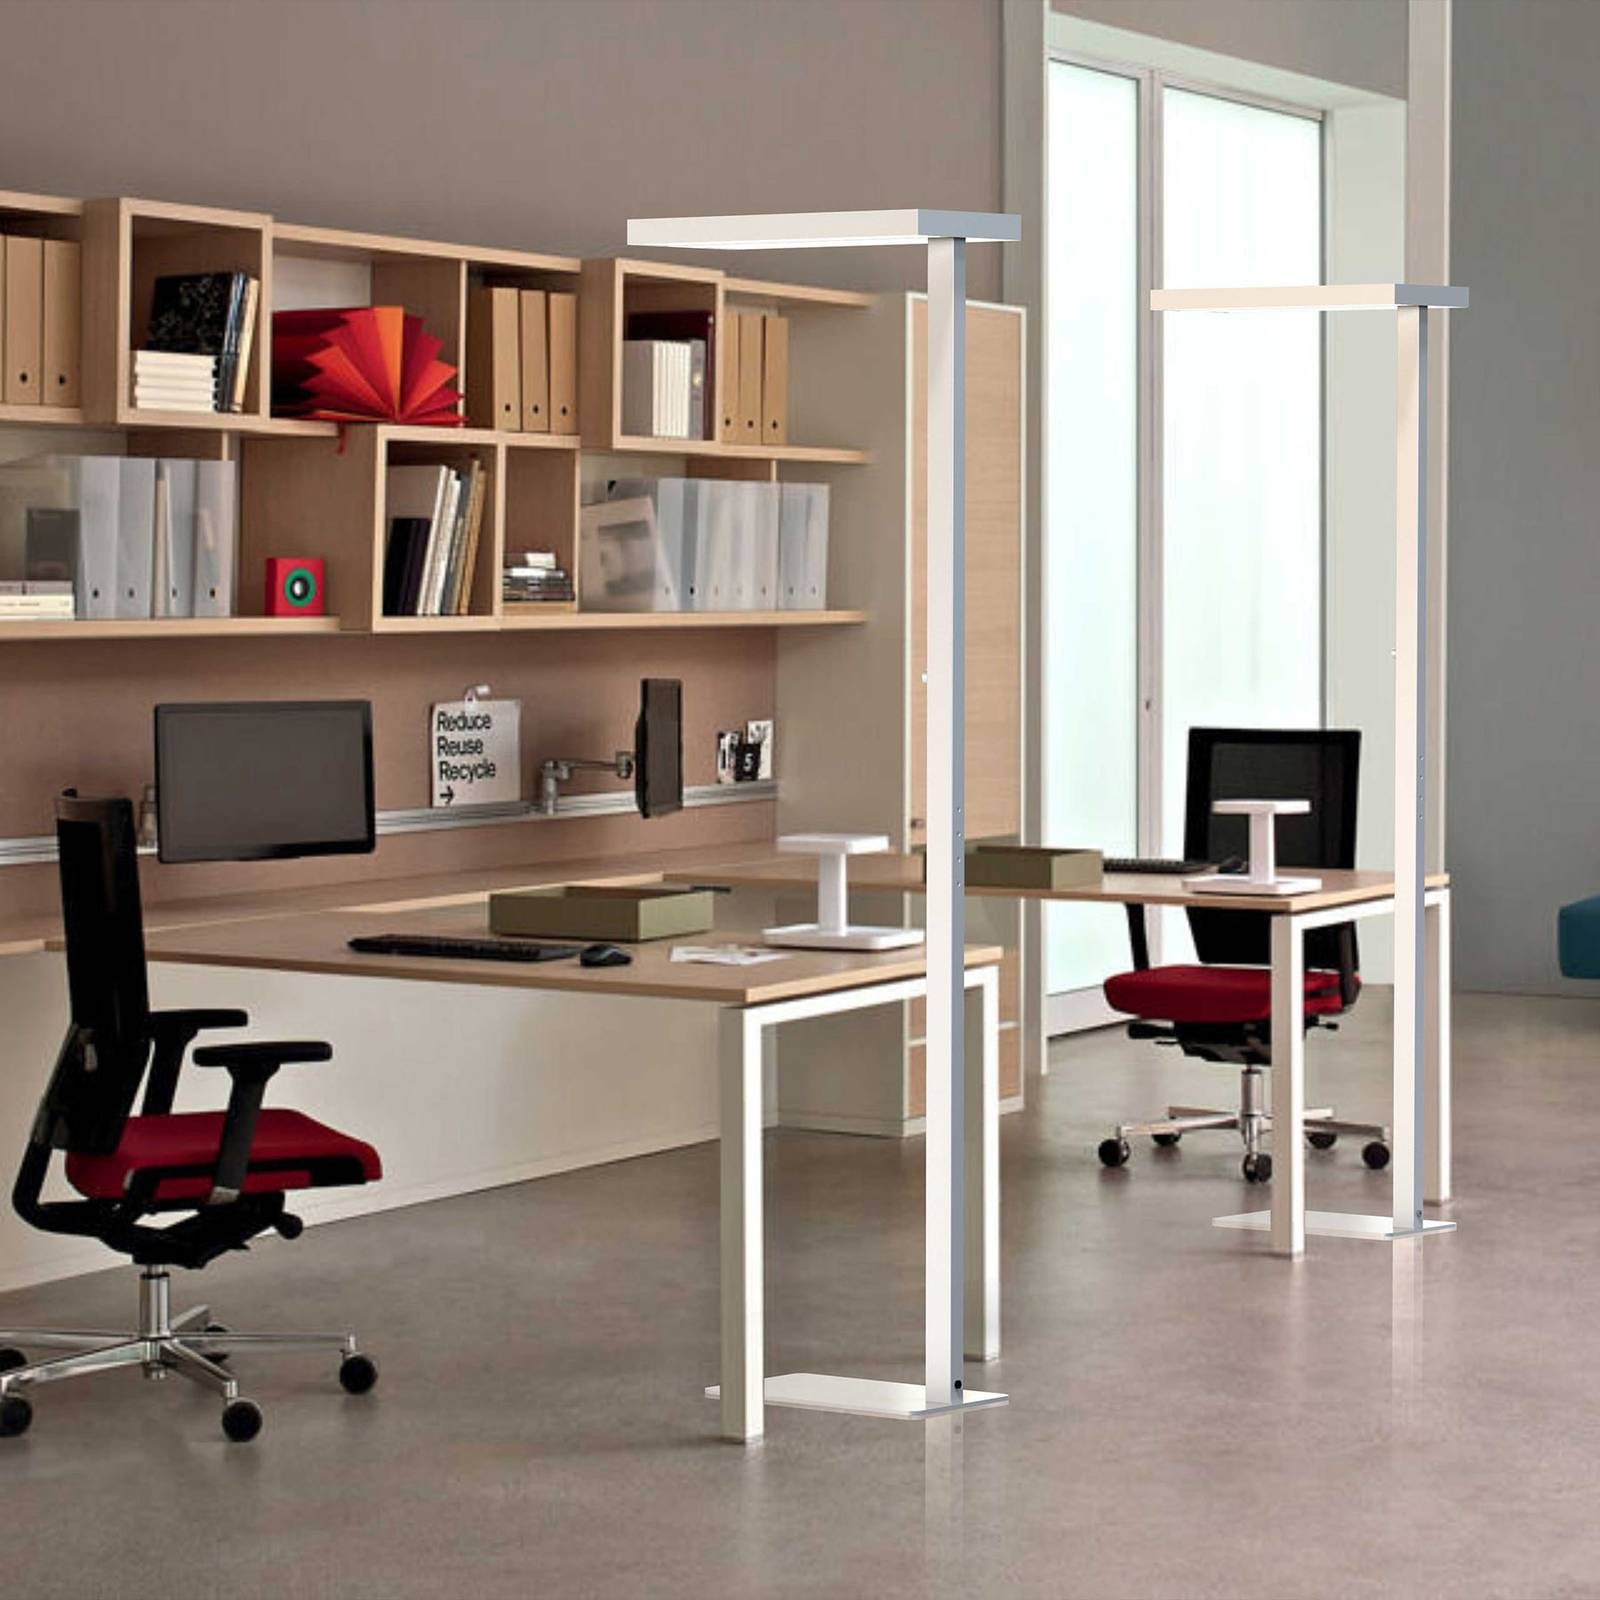 Lampadaire LED Office up/down 4000K dimmable arg